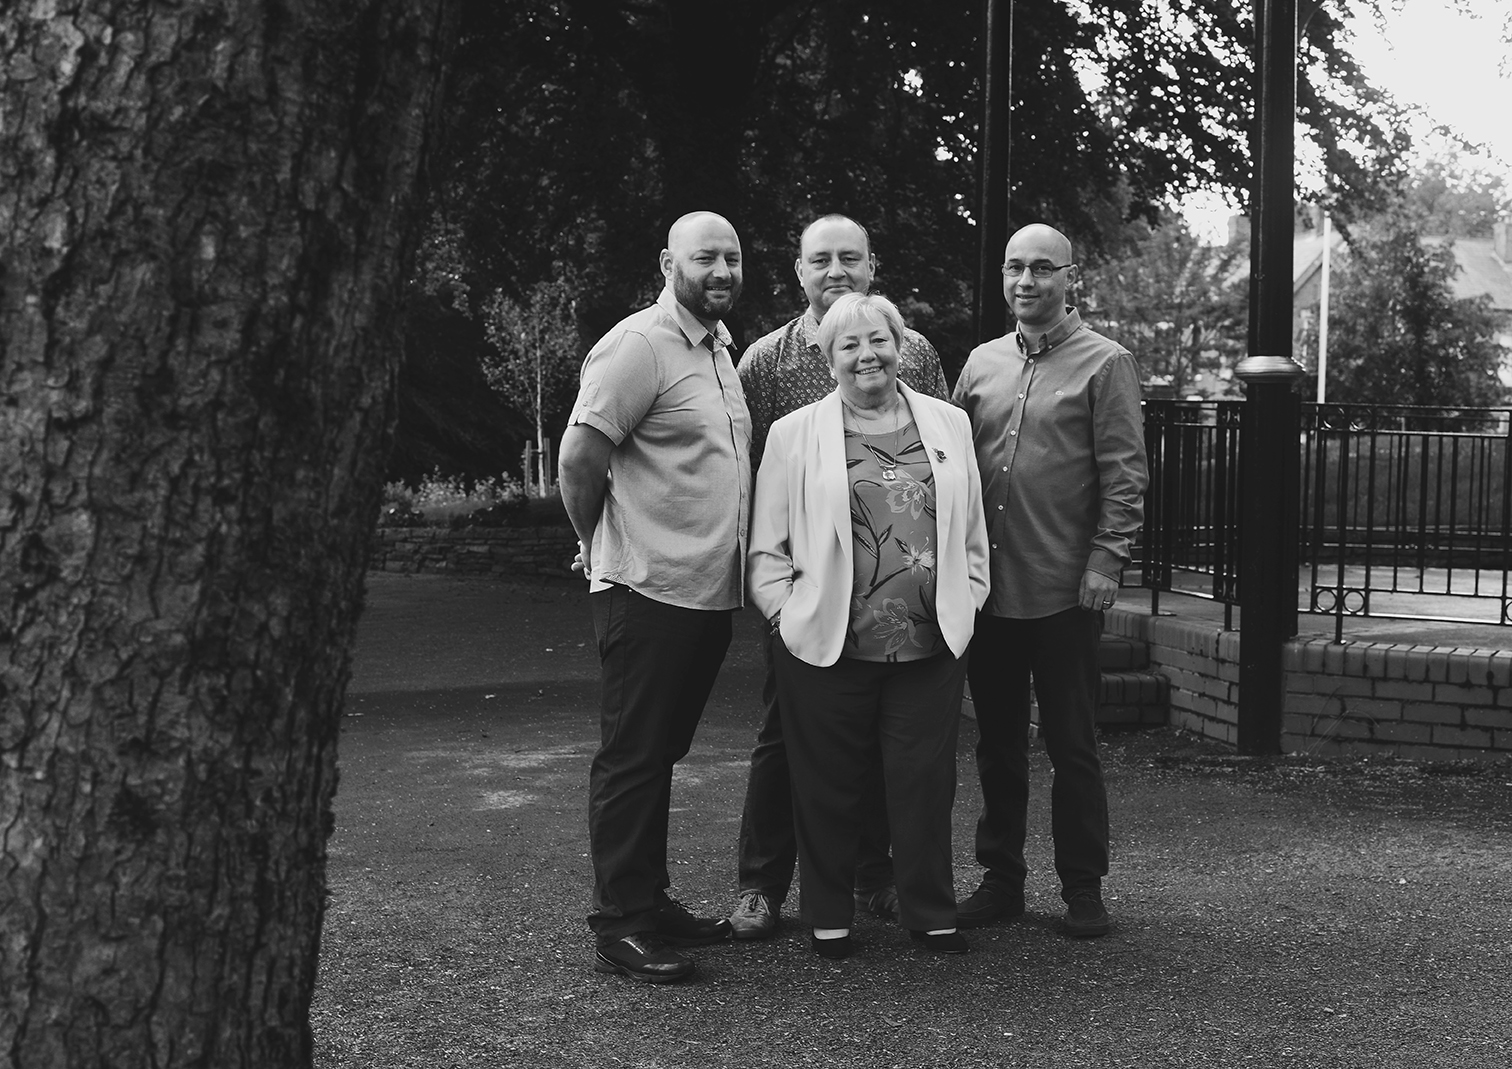 family-big-portrait-photography-lifestyle-outdoor-rochdale_03.jpg